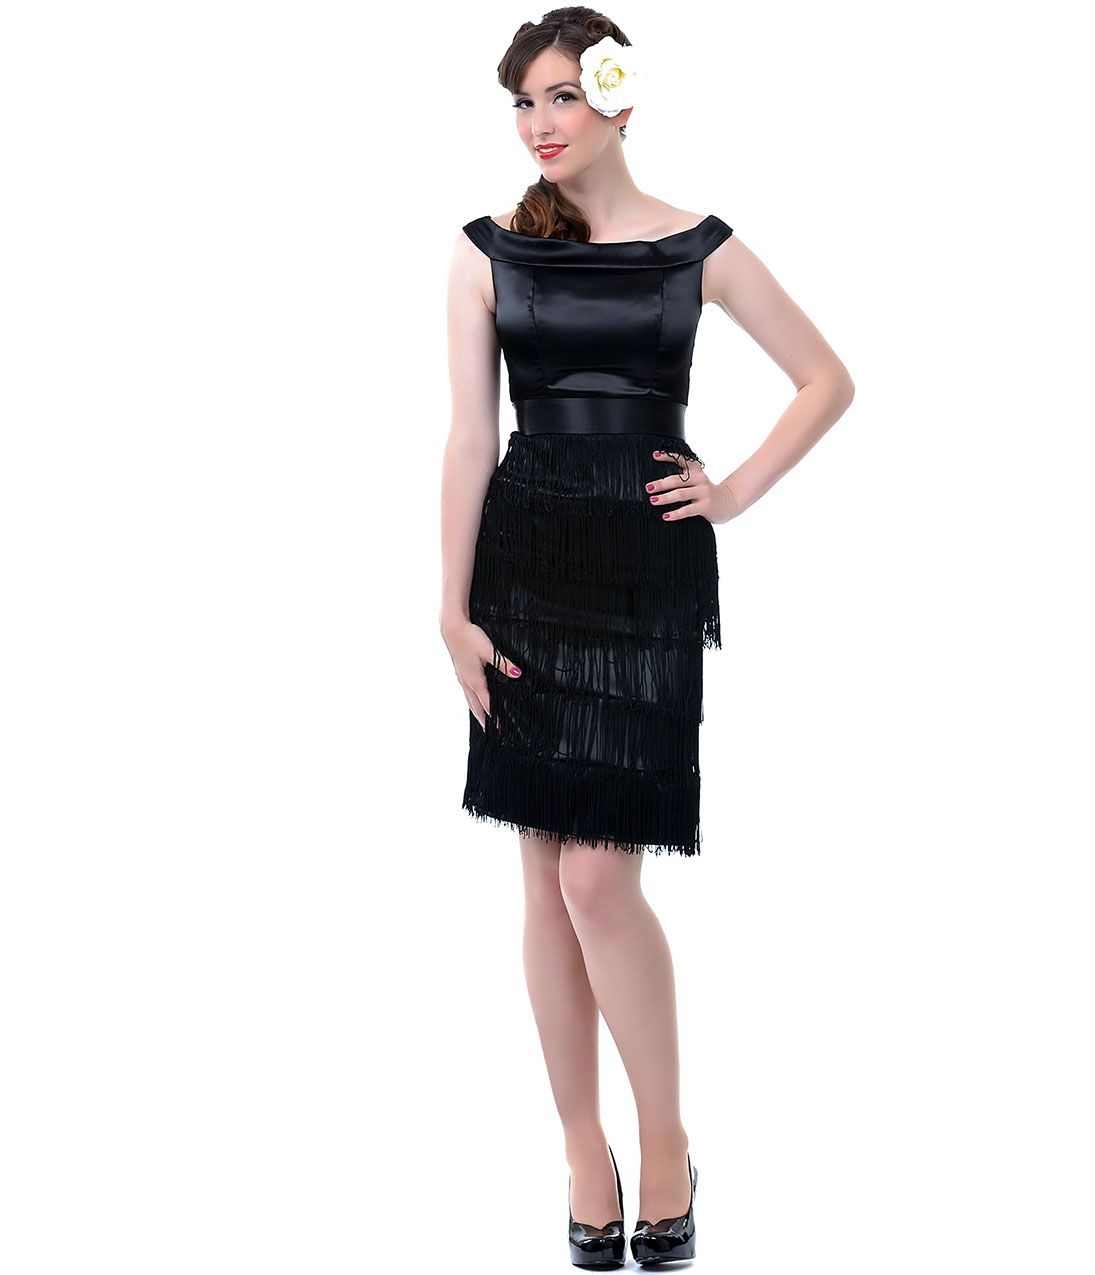 Queen of Heartz Black Fringe Lacey Gatsby Wiggle Dress- Unique Vintage